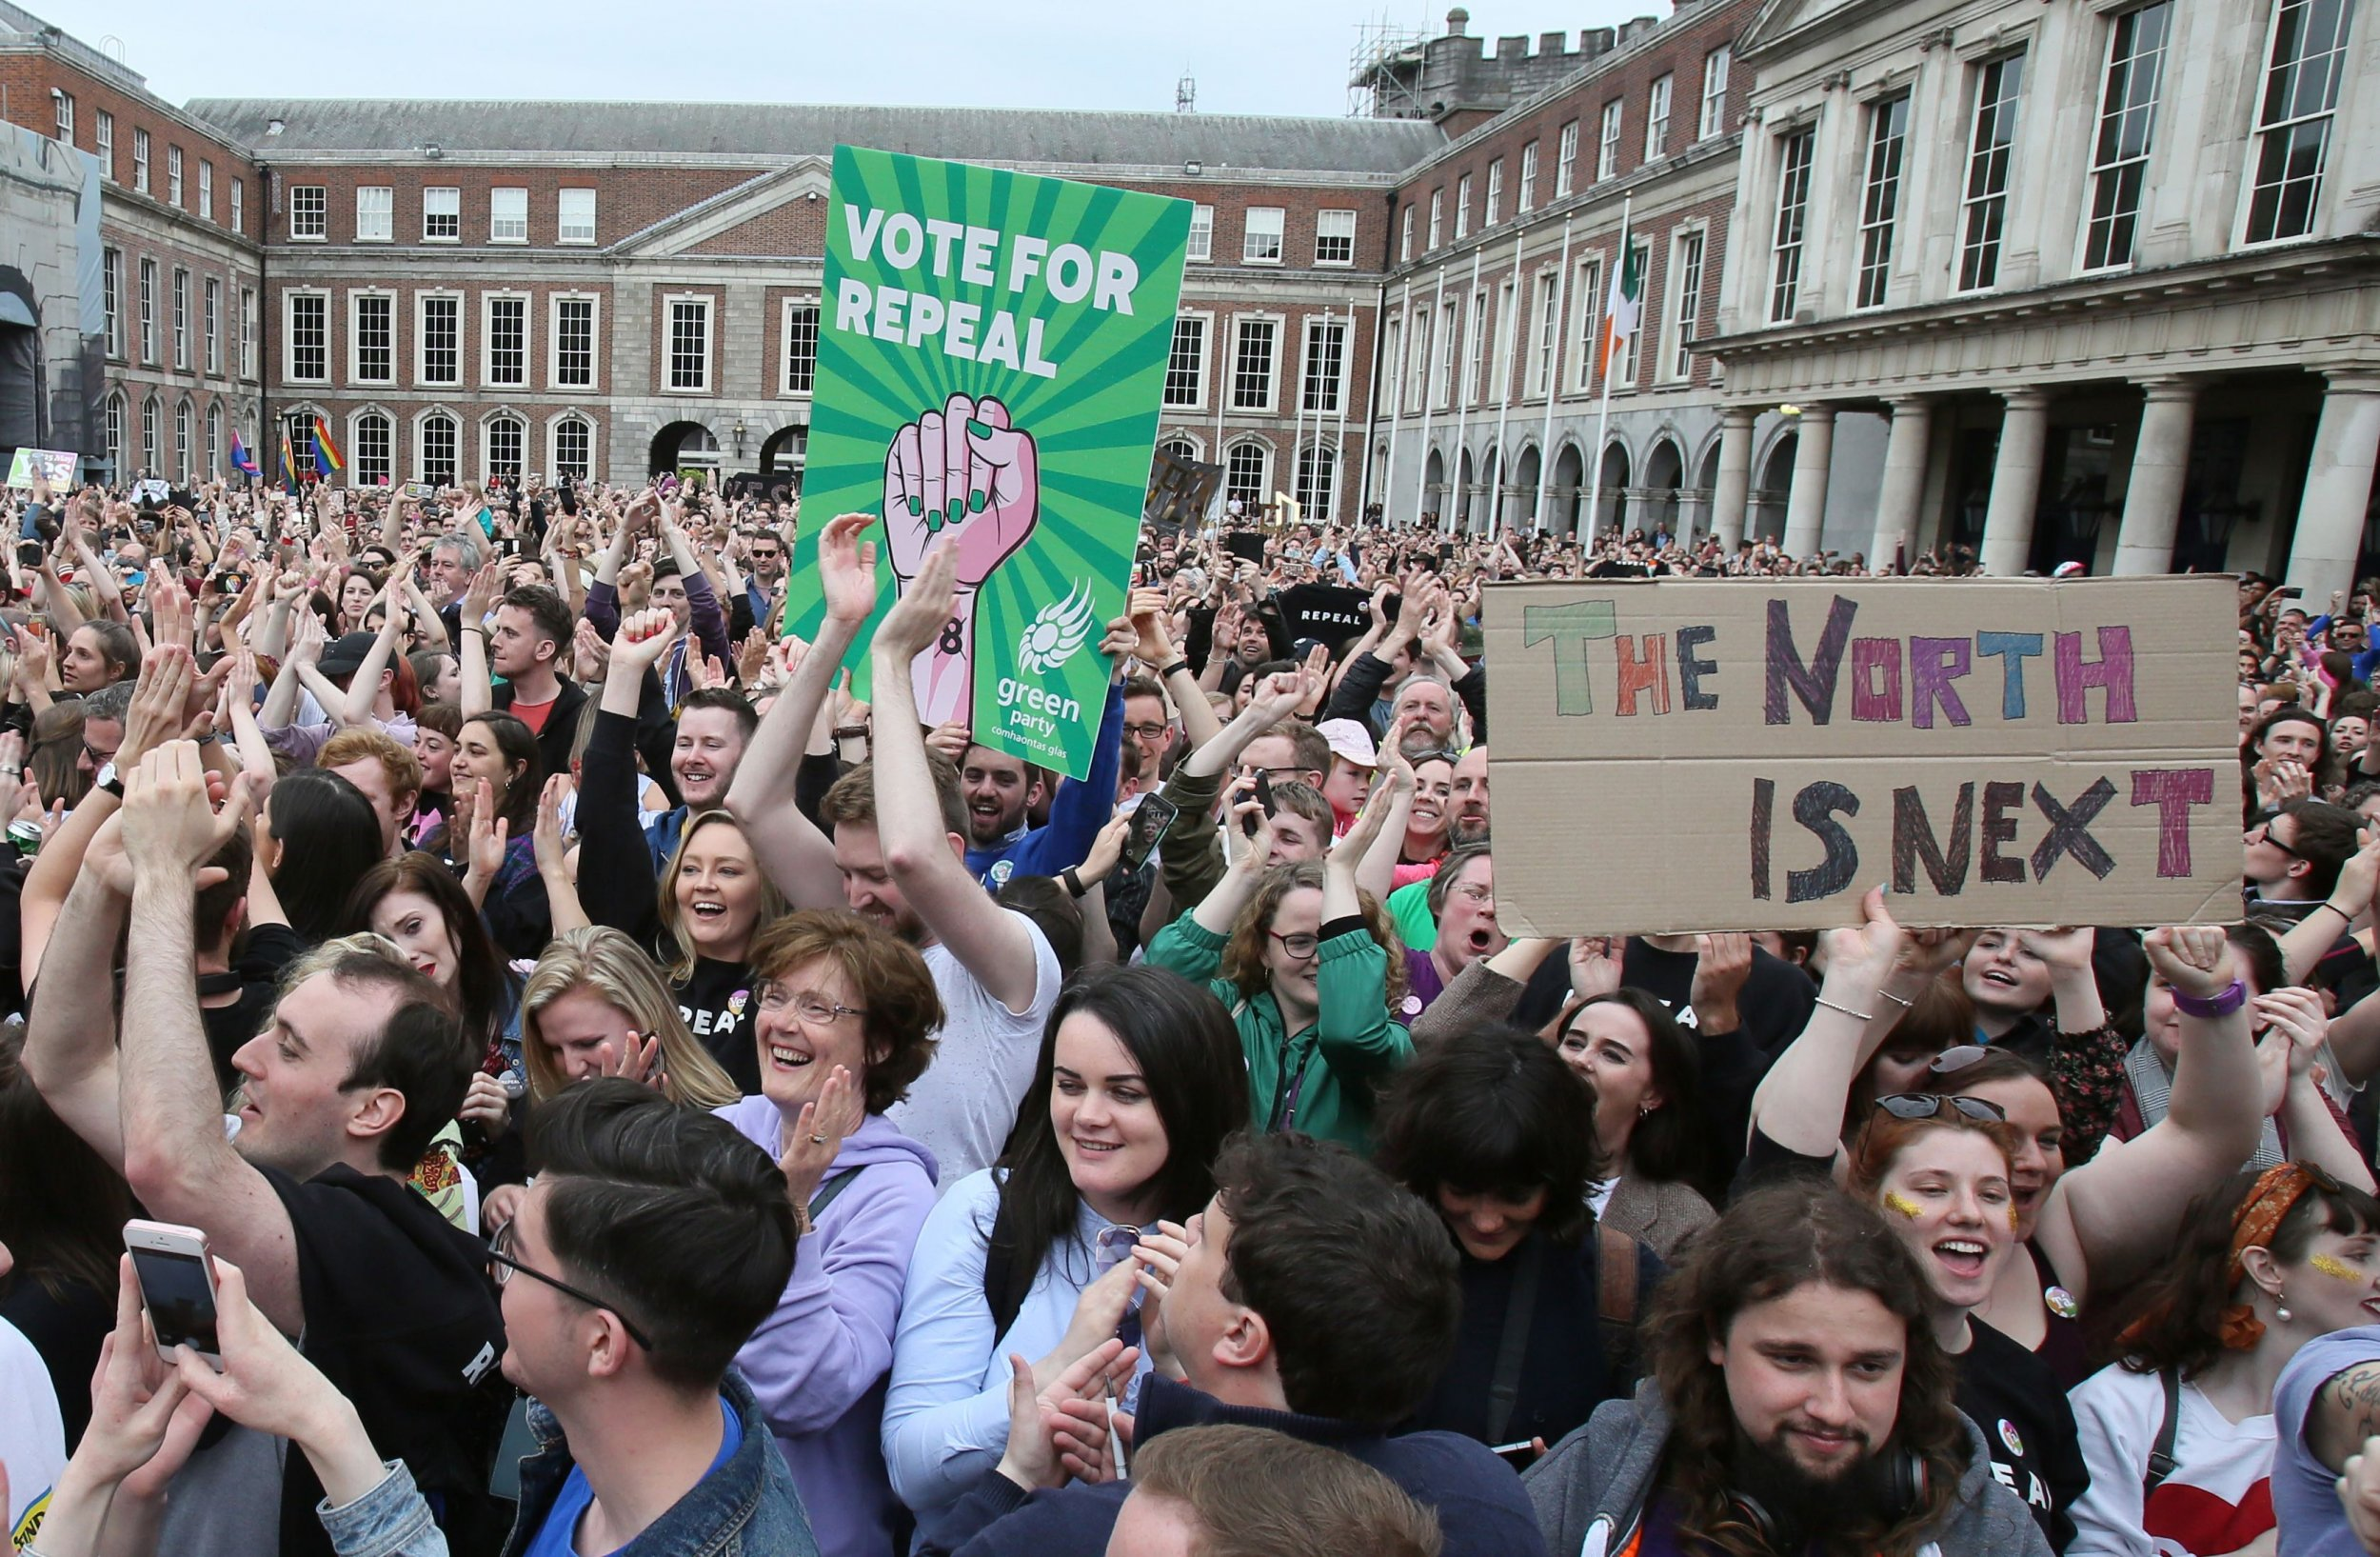 Abortions in Ireland Will Be Free for All Women, Just Months After Legalization Vote